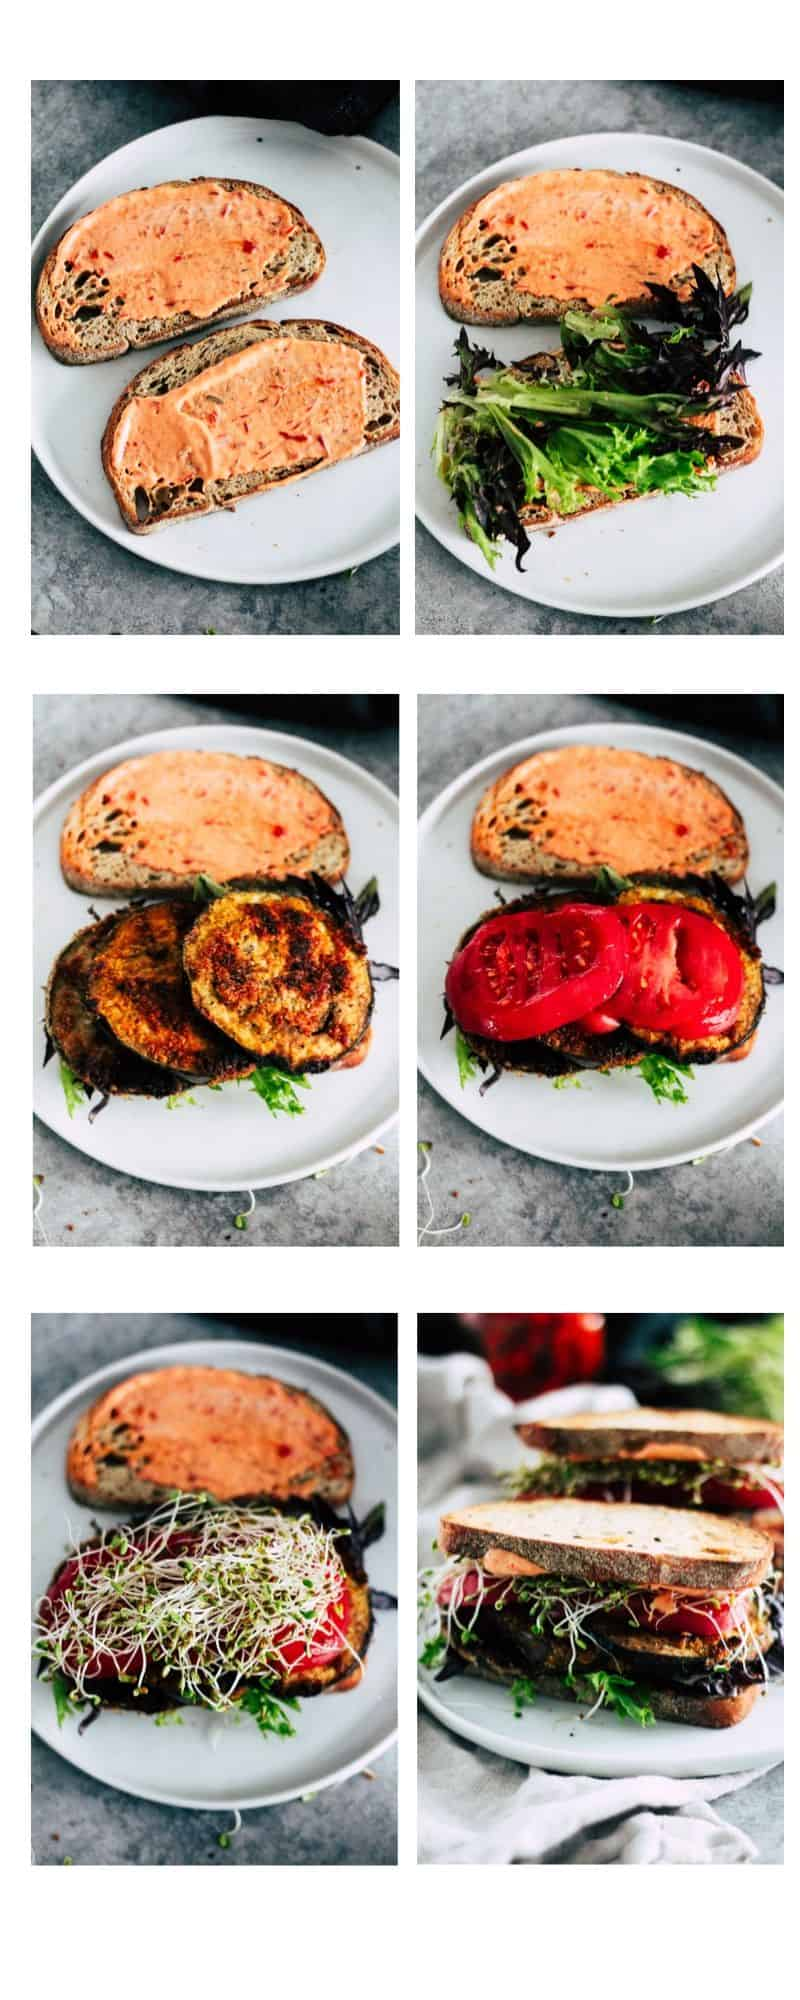 Step-by-step picture tutorial for how to make a vegetarian eggplant BLT.